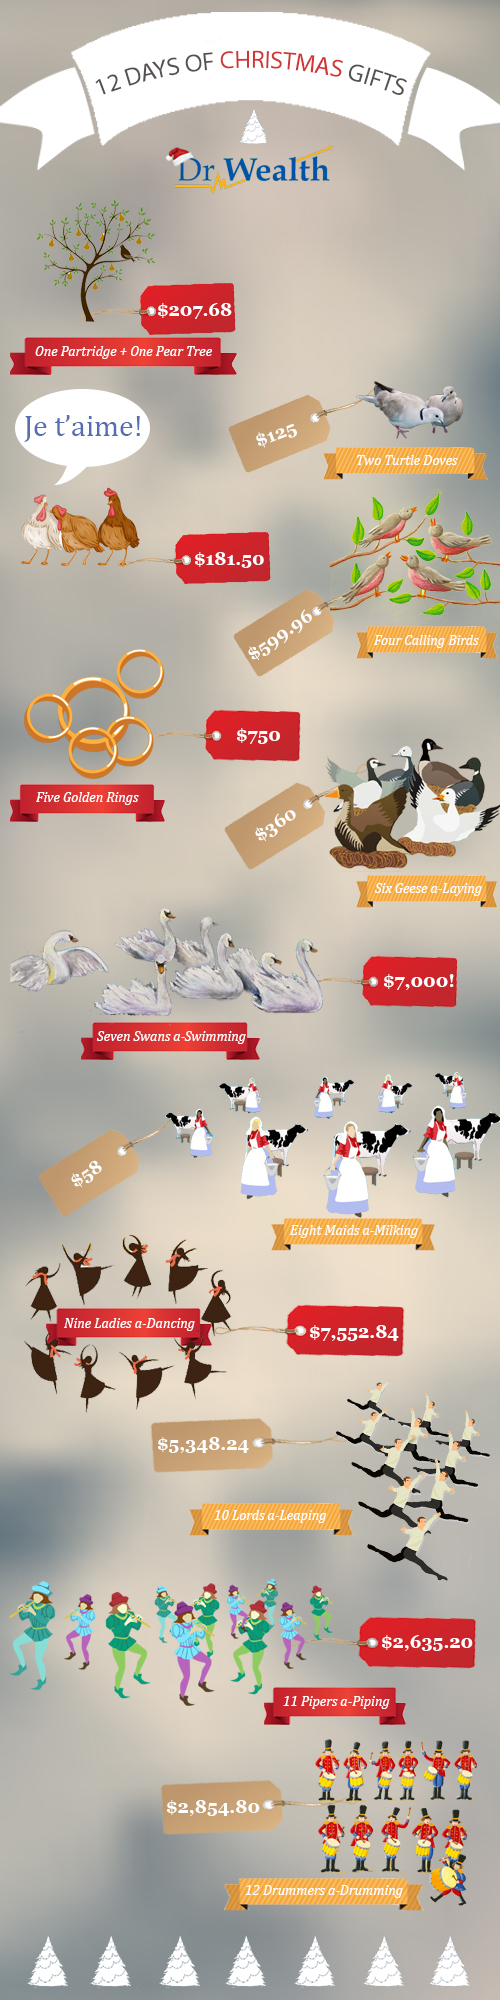 12 Days Of Christmas Costs.Cost Of 12 Days Of Christmas Gifts Infographic Personal